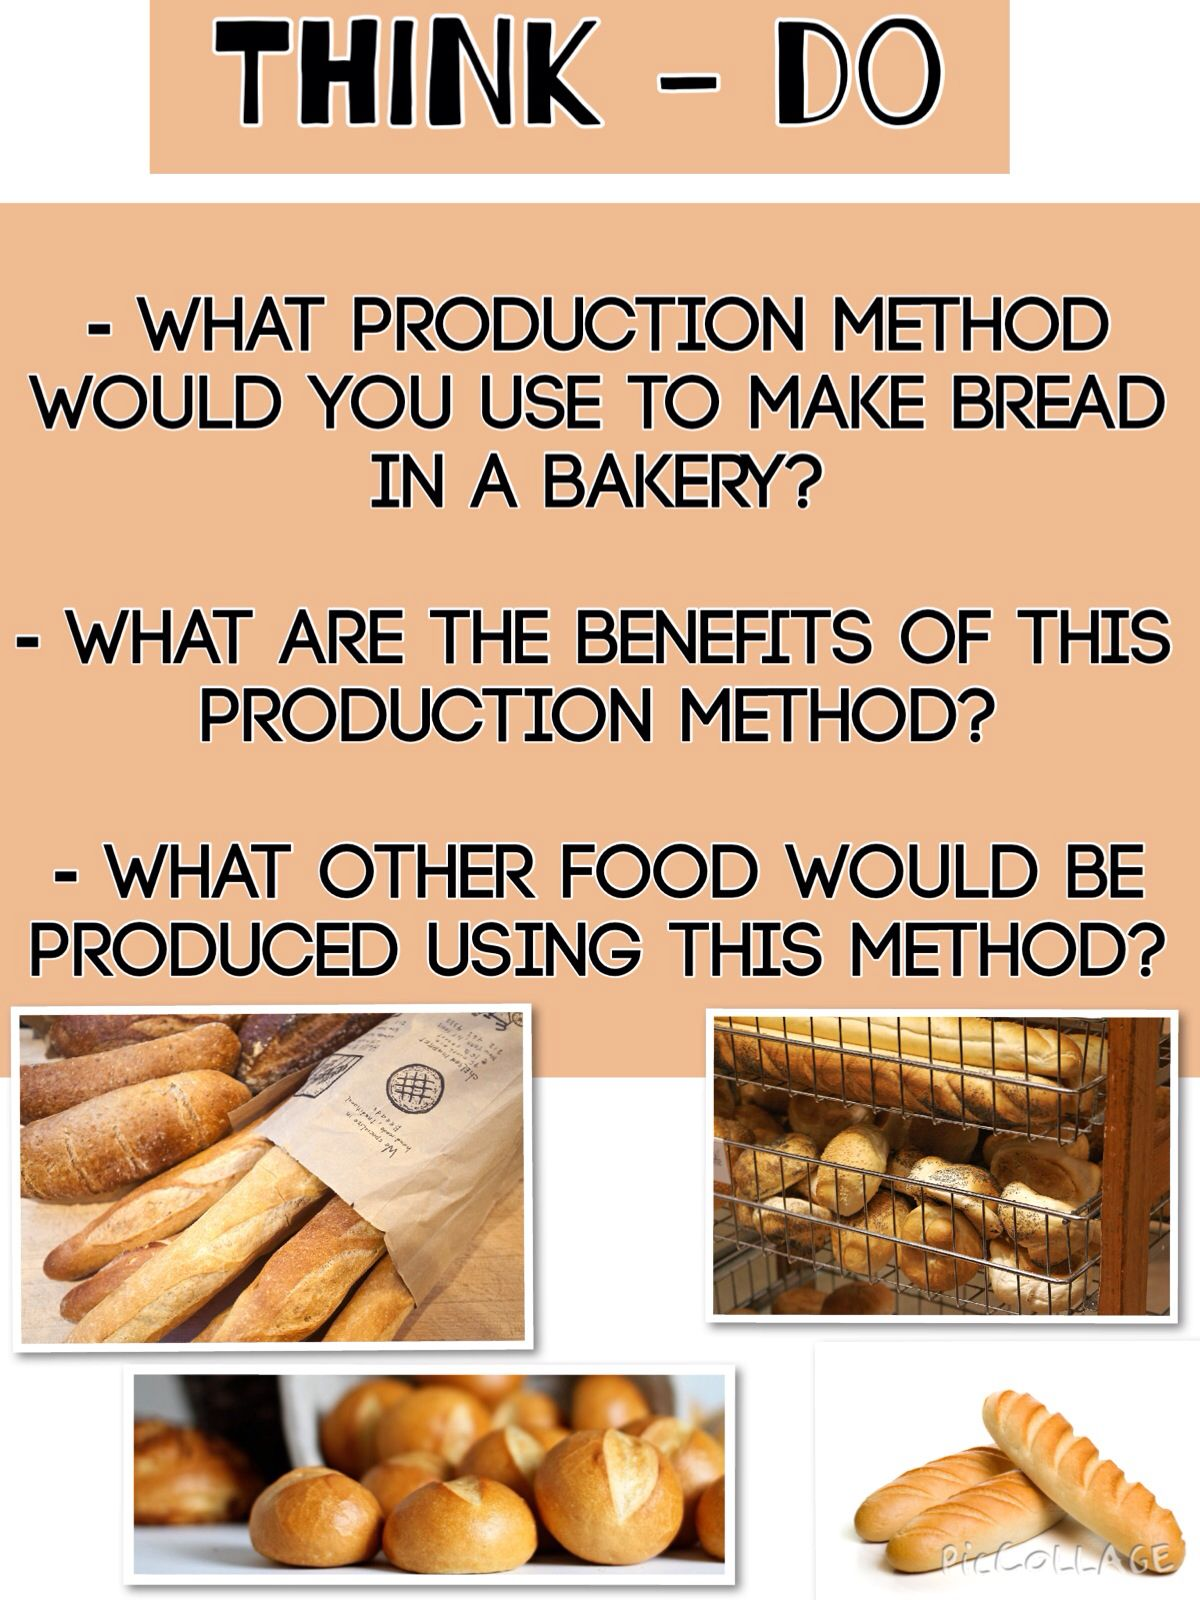 Production methods Food, Cooking and baking